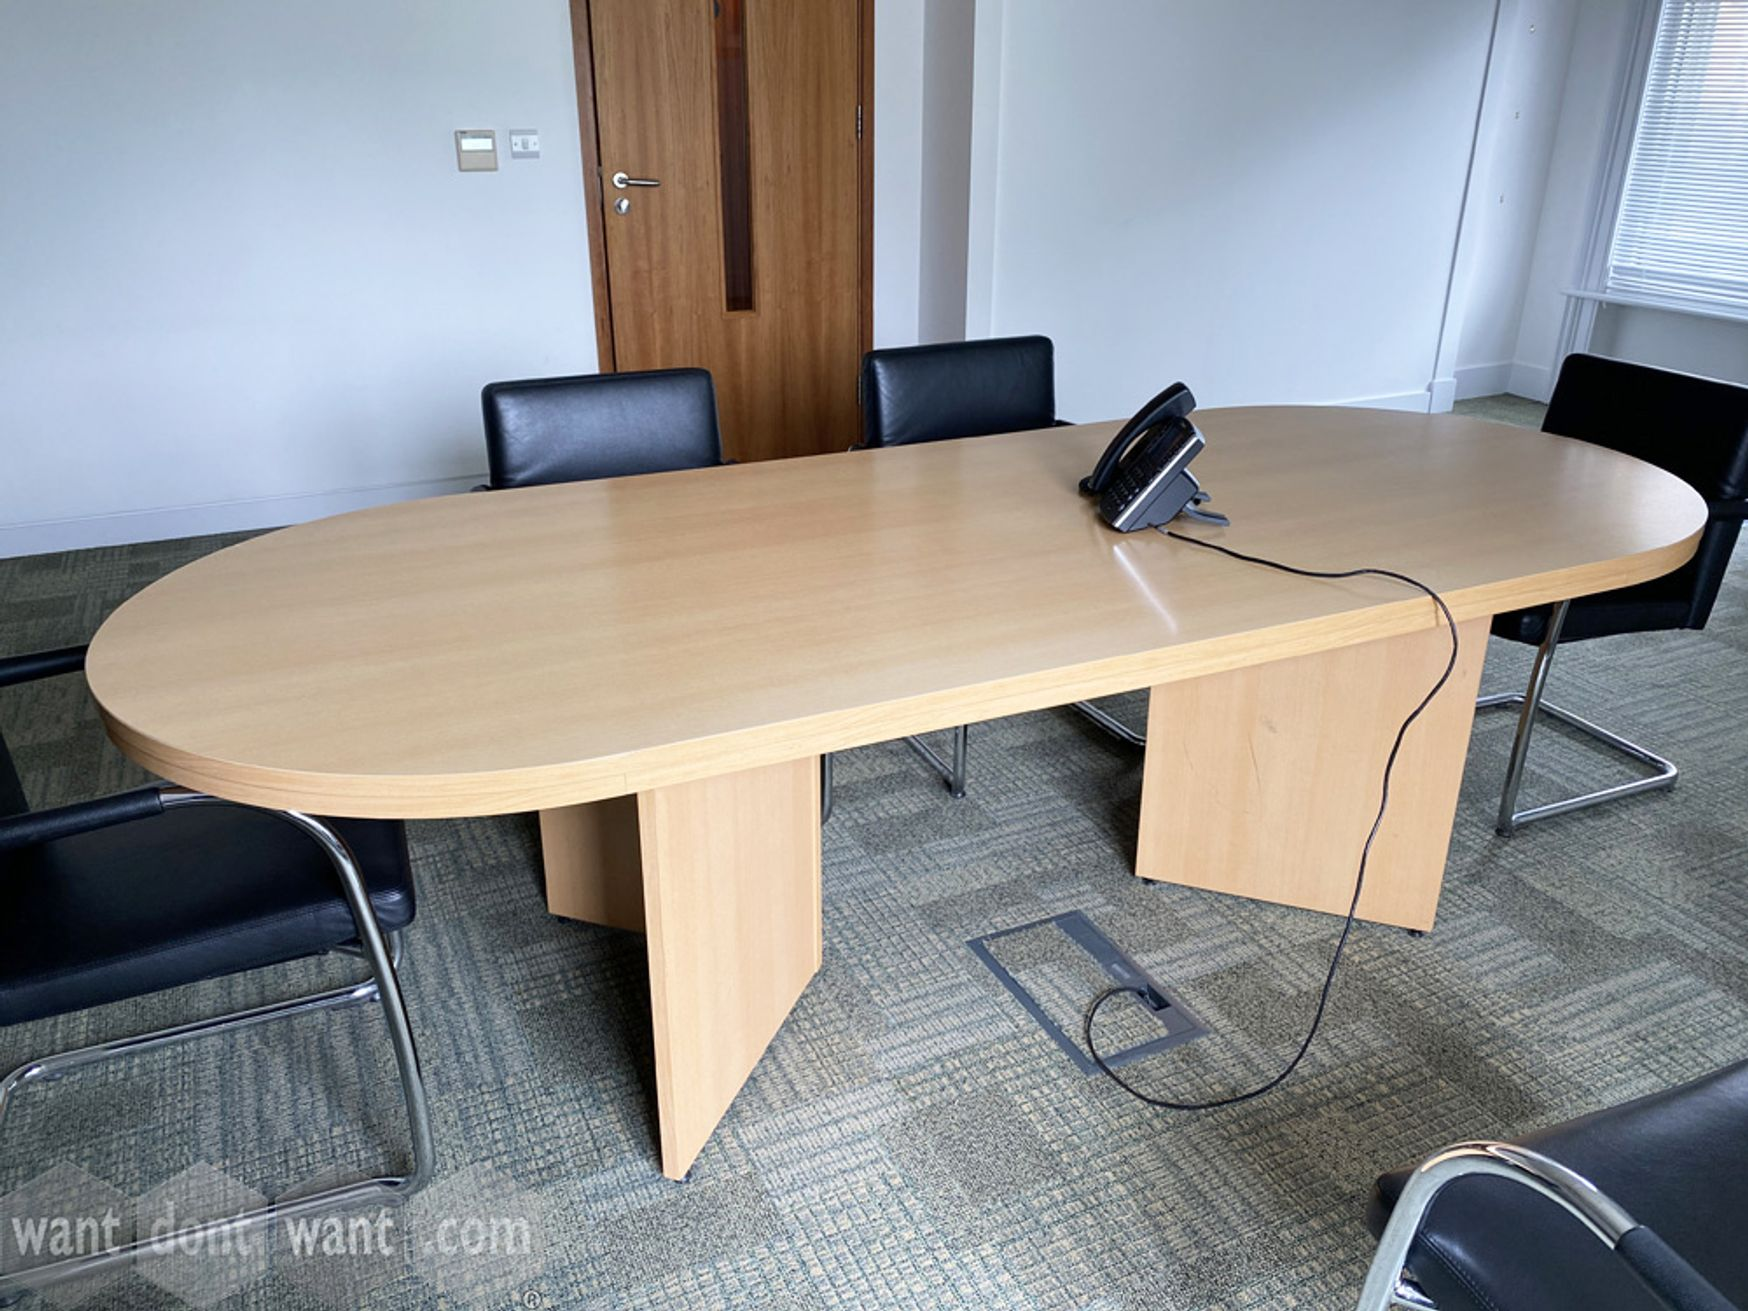 Used maple MFC meeting table 2450mm wide x 1000mm deep